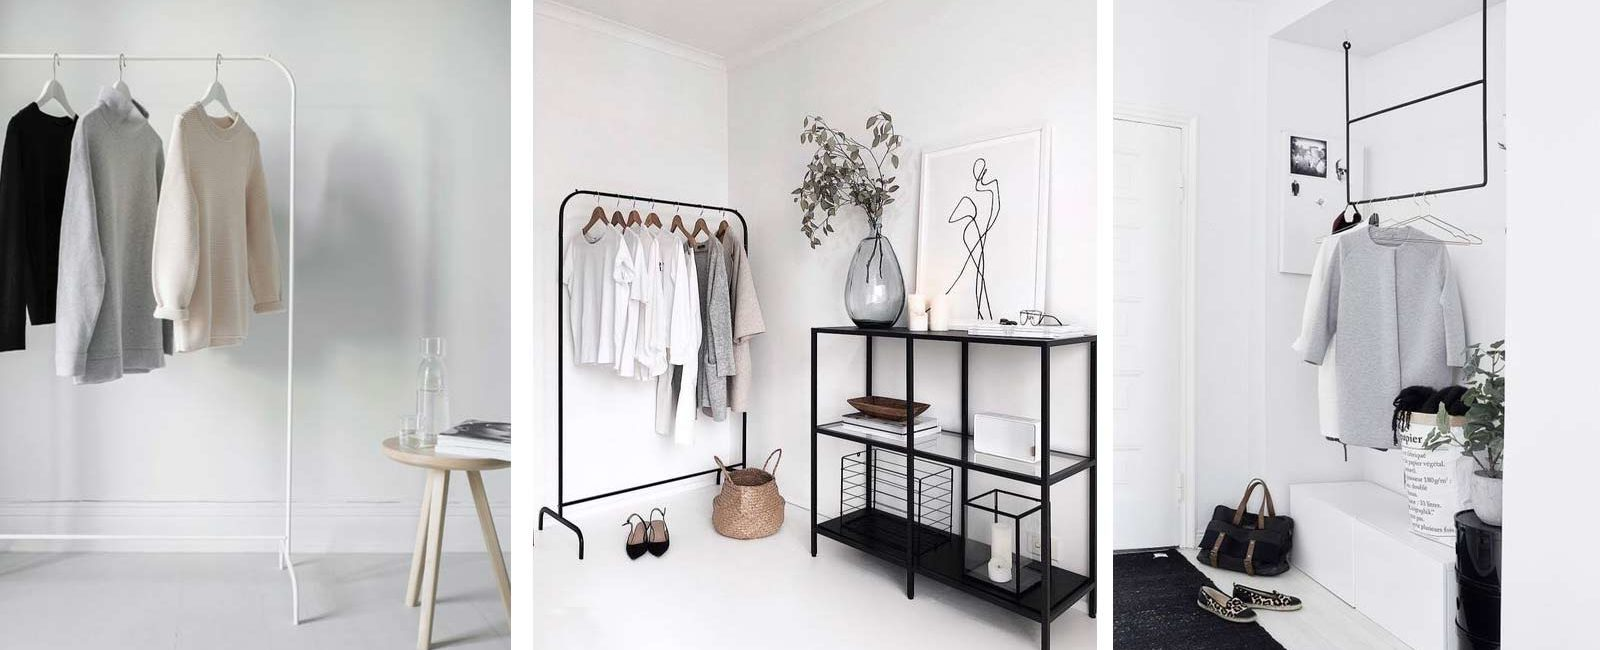 COAT RACKS BECOME DESIGN OBJECTS